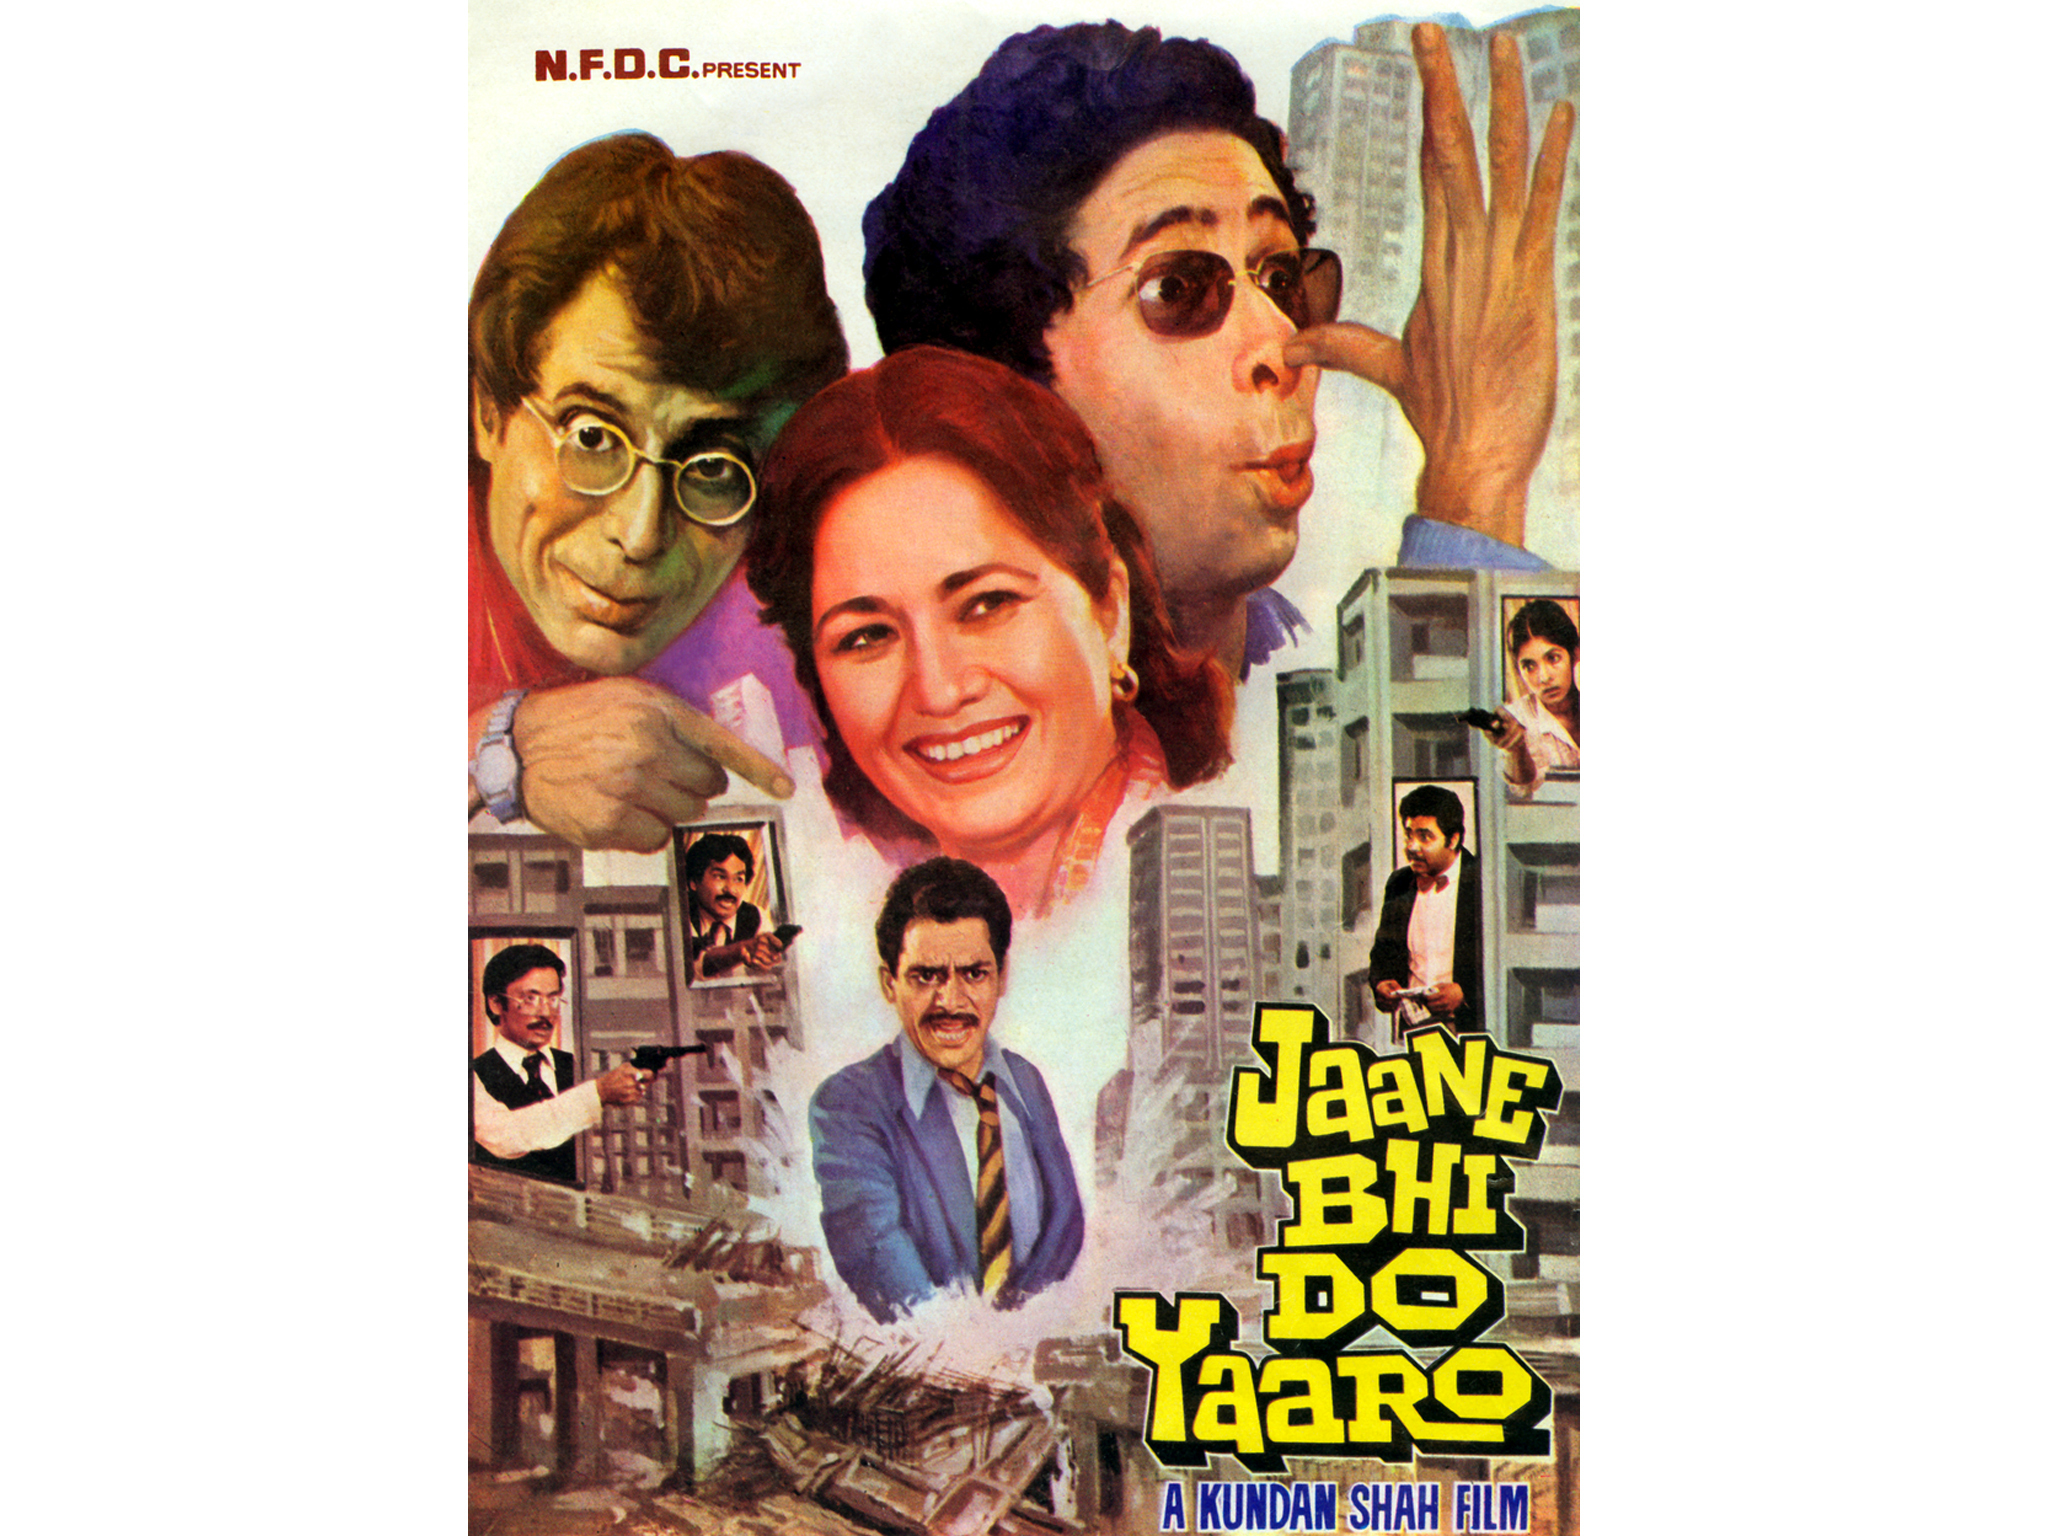 Hindi movie: Jaane Bhi Do Yaaro